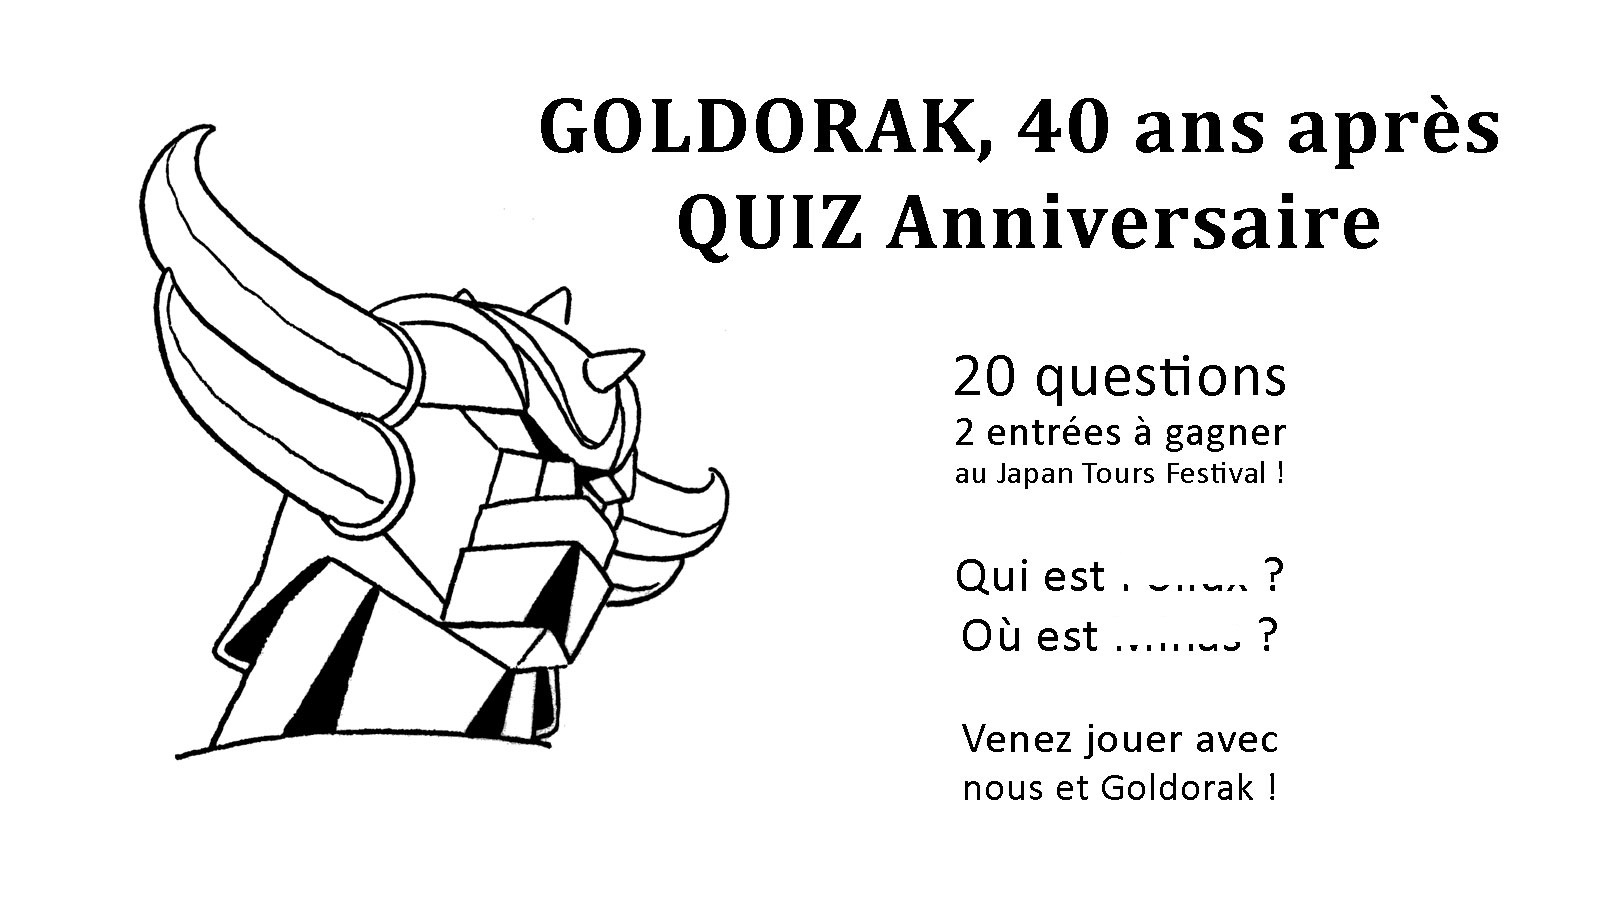 EVENEMENT : AFTER JAPAN EXPO 2018 - ULYSSE 31 ... ET LES 40 ANS DE GOLDORAK ! 181022033943367682